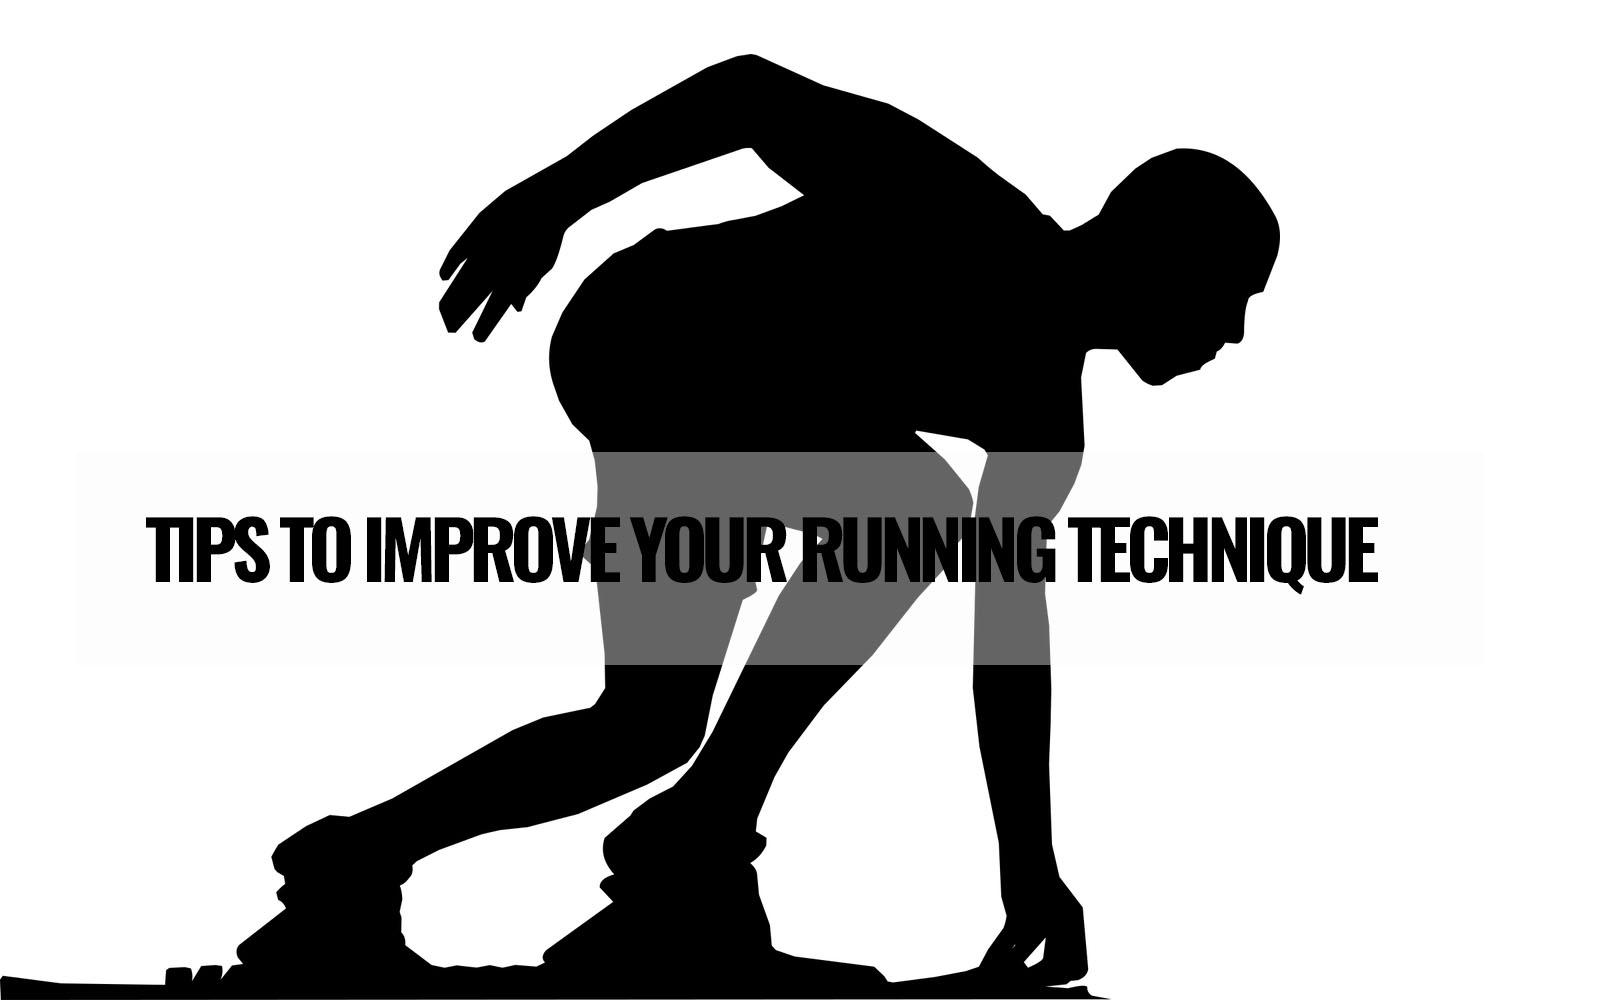 Tips to improve your running technique